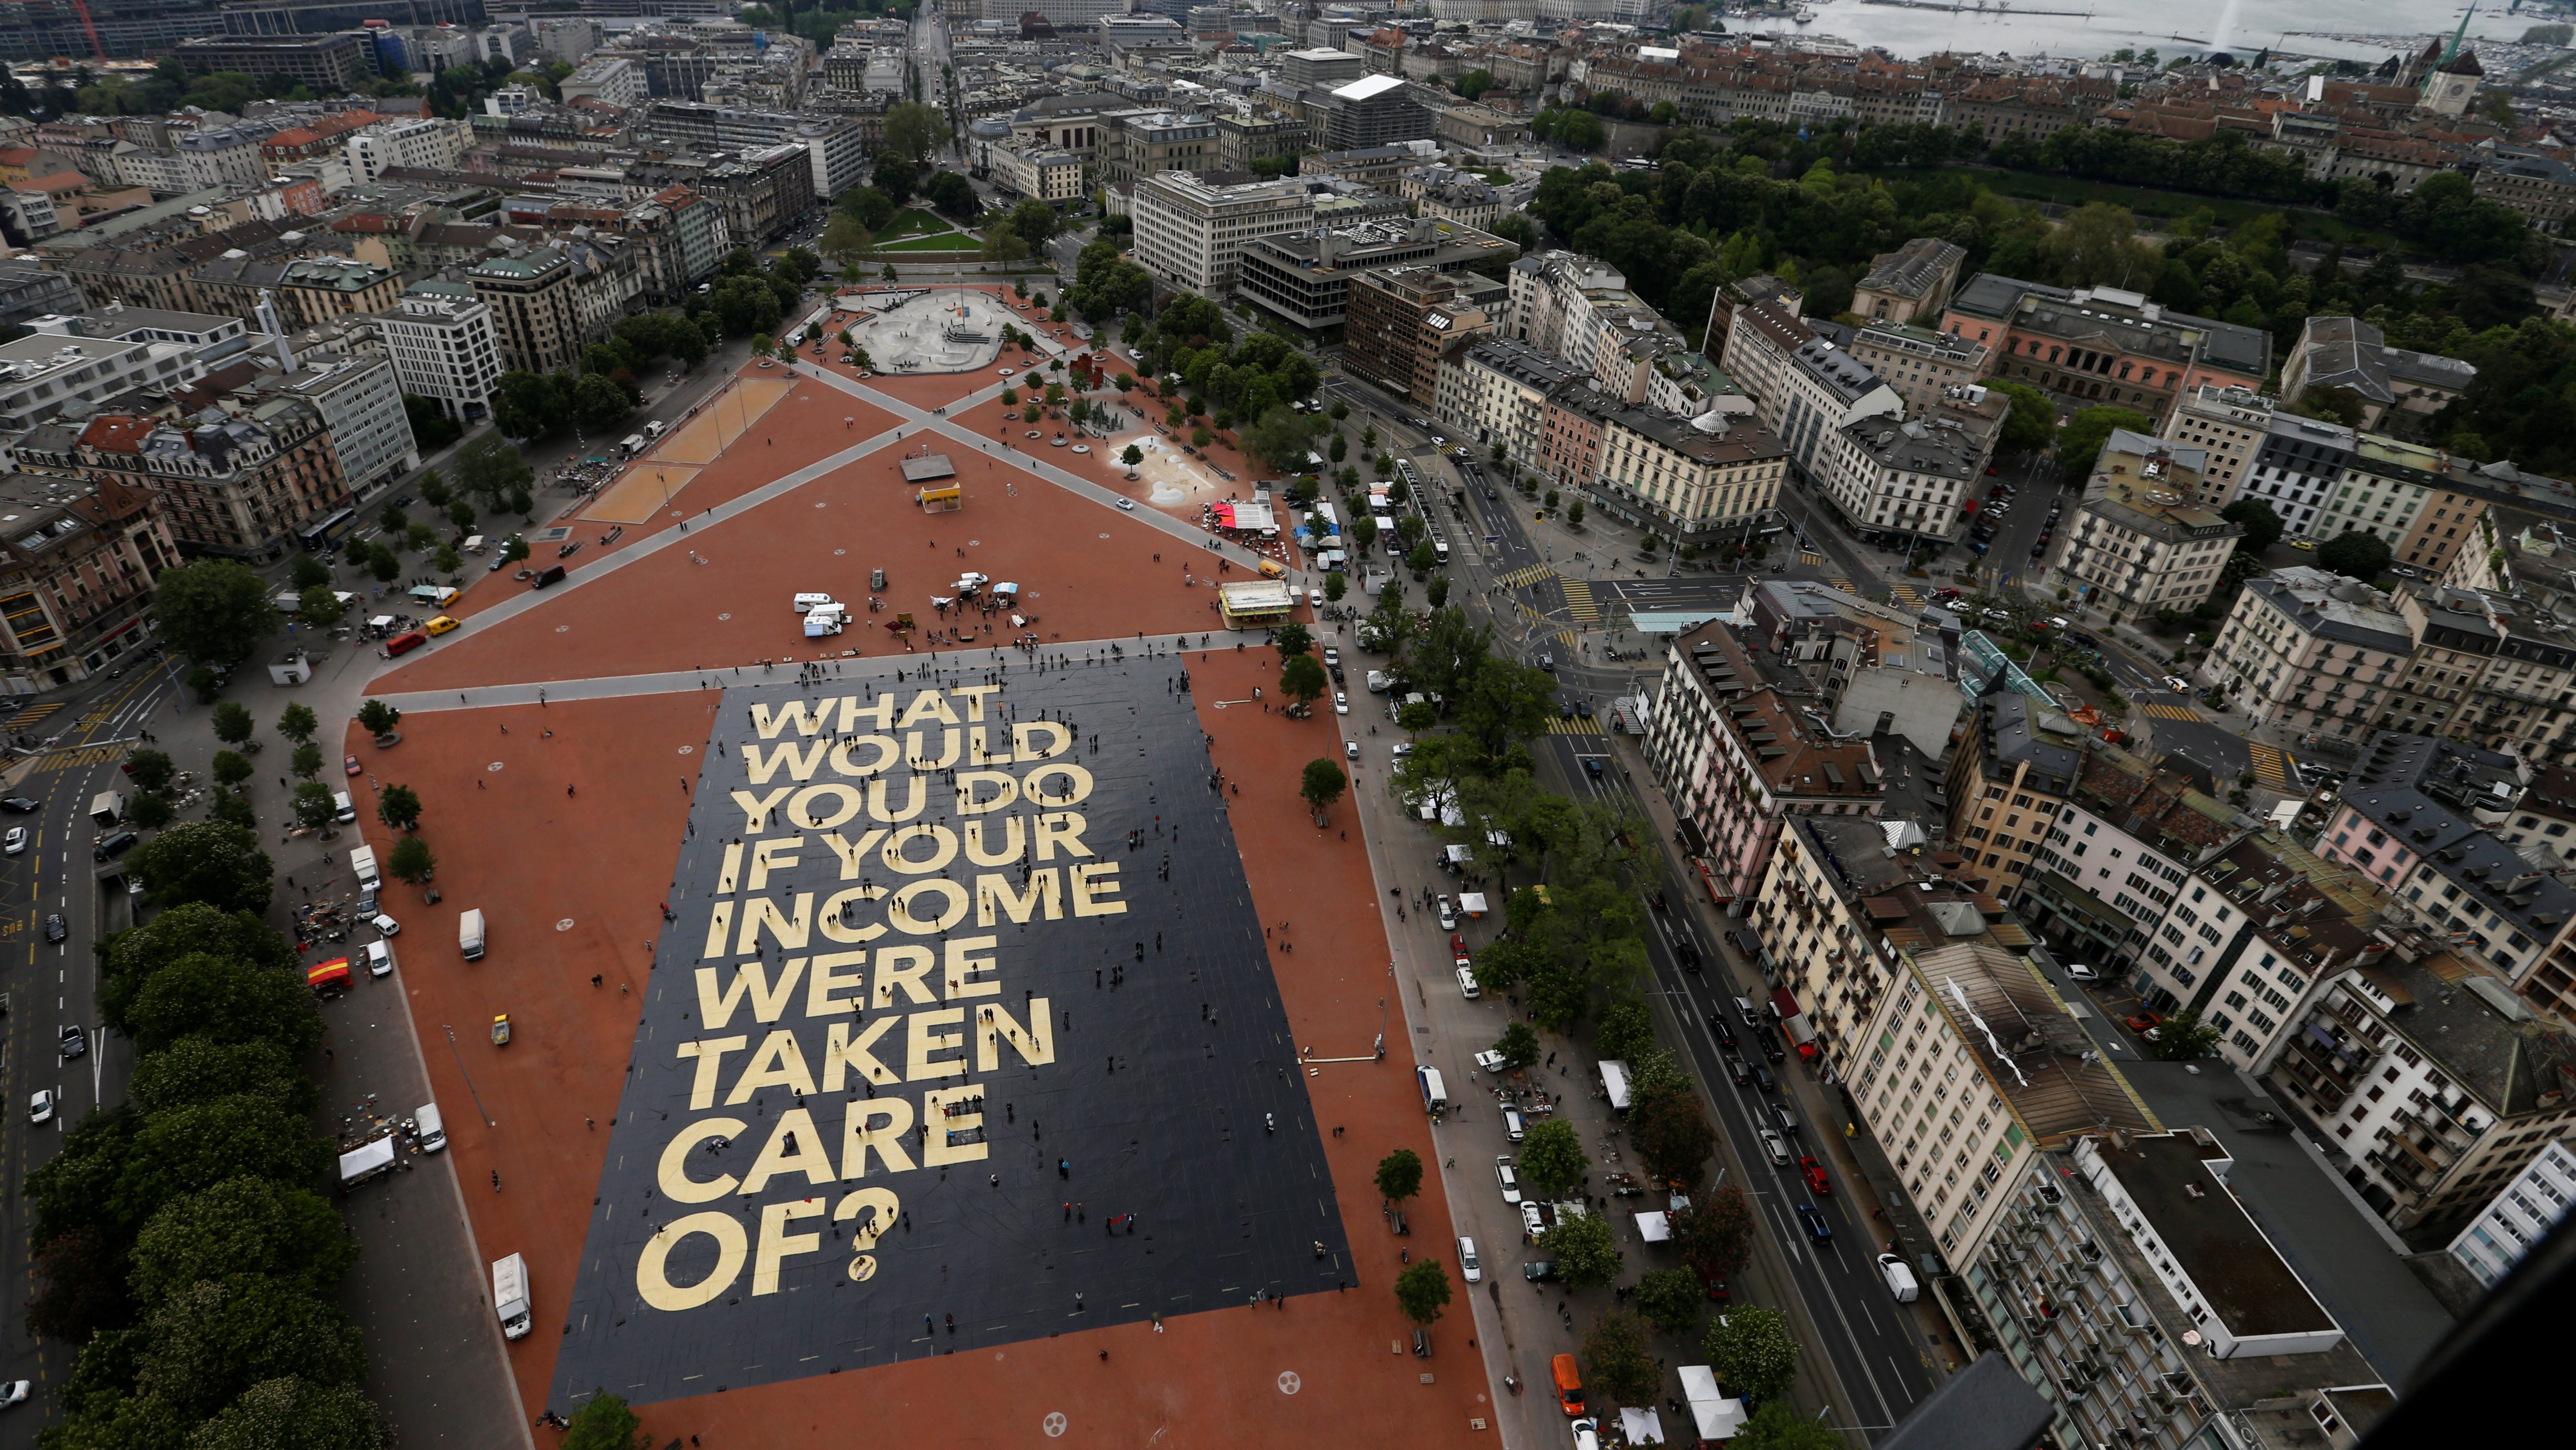 """A 8,000 square meter poster is pictured on the Plainpalais square in Geneva, Switzerland May 14, 2016. The committee for the initiative for an """"Unconditional Basic Income"""" has crowdfunded the """"world's biggest poster"""", posing the question """"What would you do if your income were taken care of ?"""". Swiss citizens will vote on June 5, 2016 on the proposal for an """"Unconditional Basic Income"""". REUTERS/Denis Balibouse TPX IMAGES OF THE DAY - RTSEA8F"""